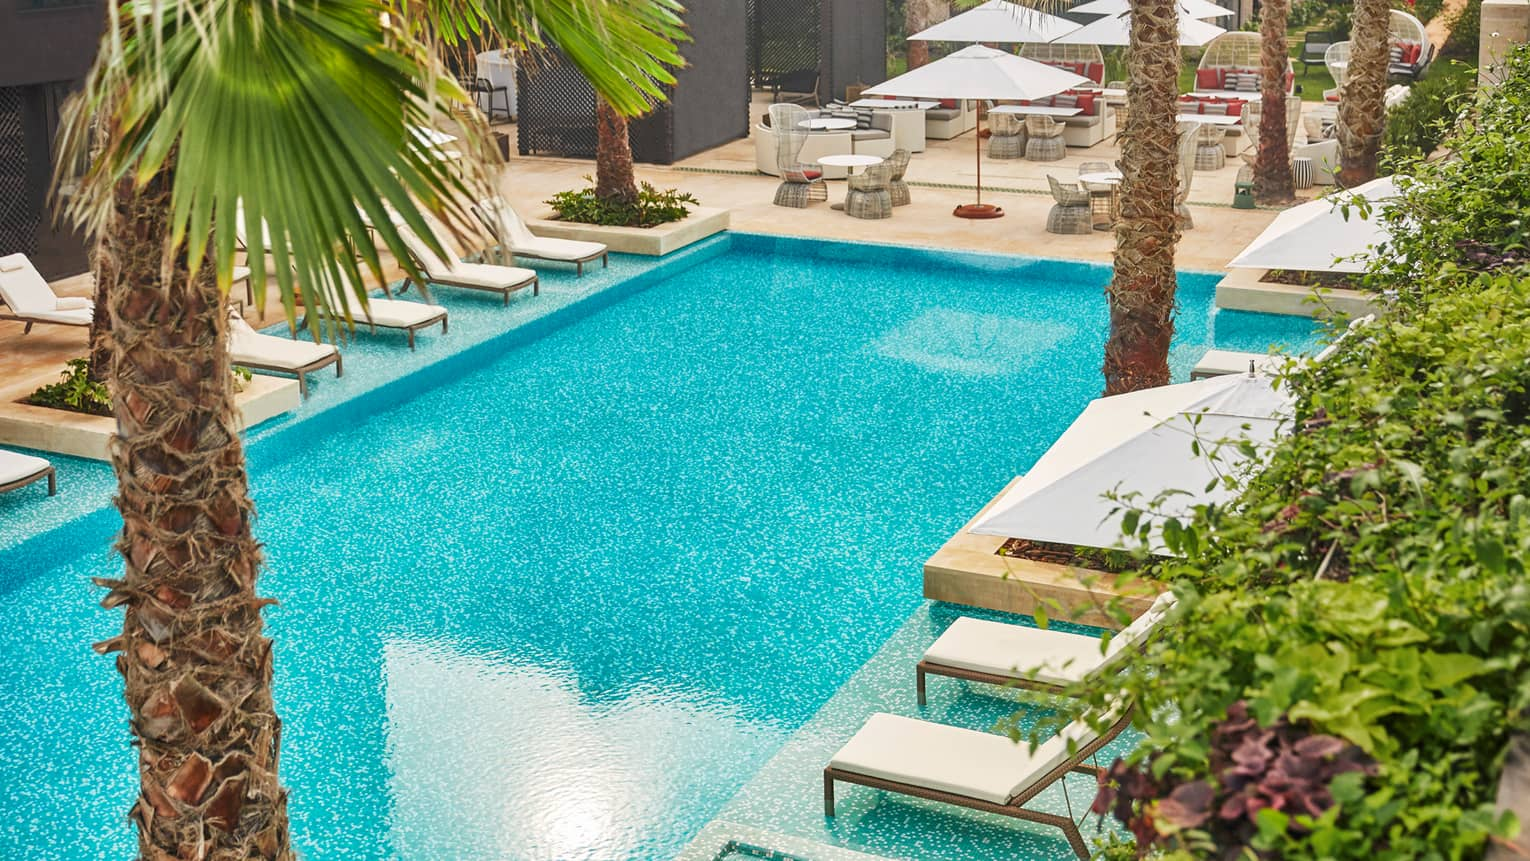 Blue outdoor swimming pool lined by white lounge chairs, umbrellas, palm trees